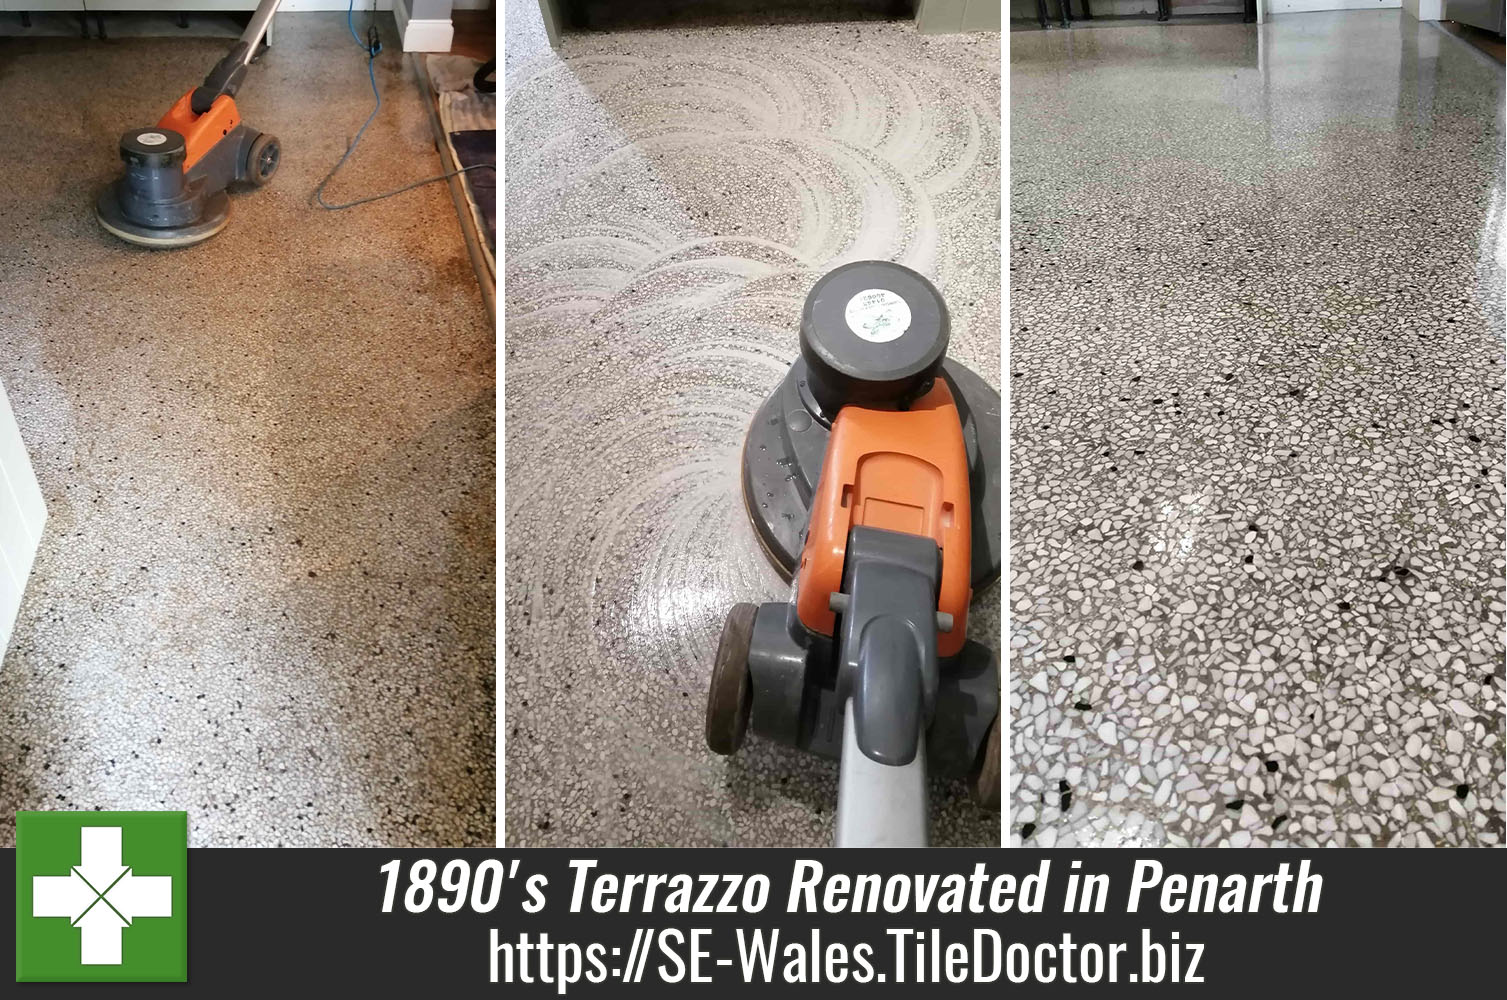 Renovating an 1890's Terrazzo Floor at a Church Vestry in Penarth